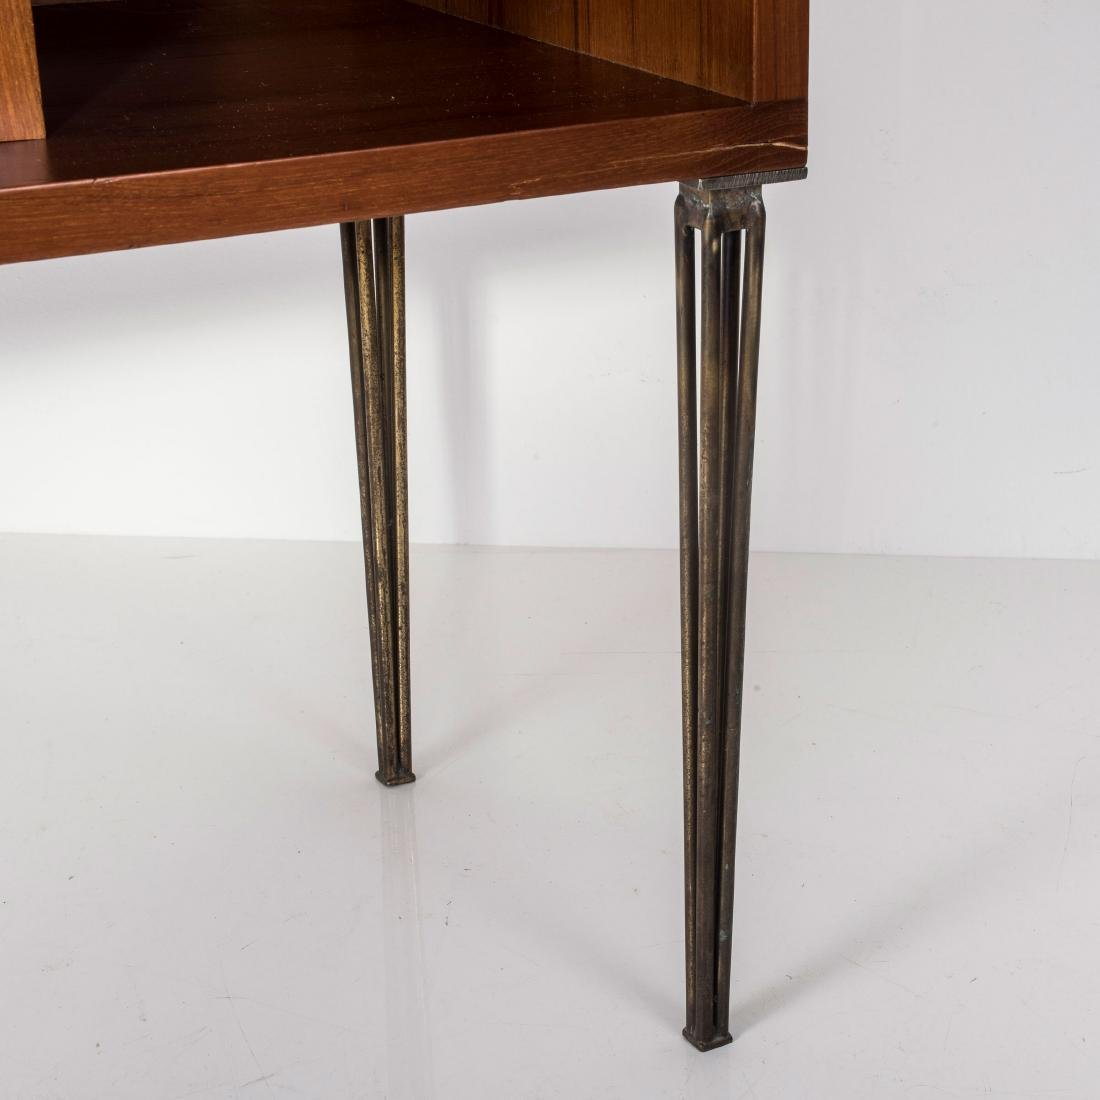 Console table with shelves, c. 1960 - 2